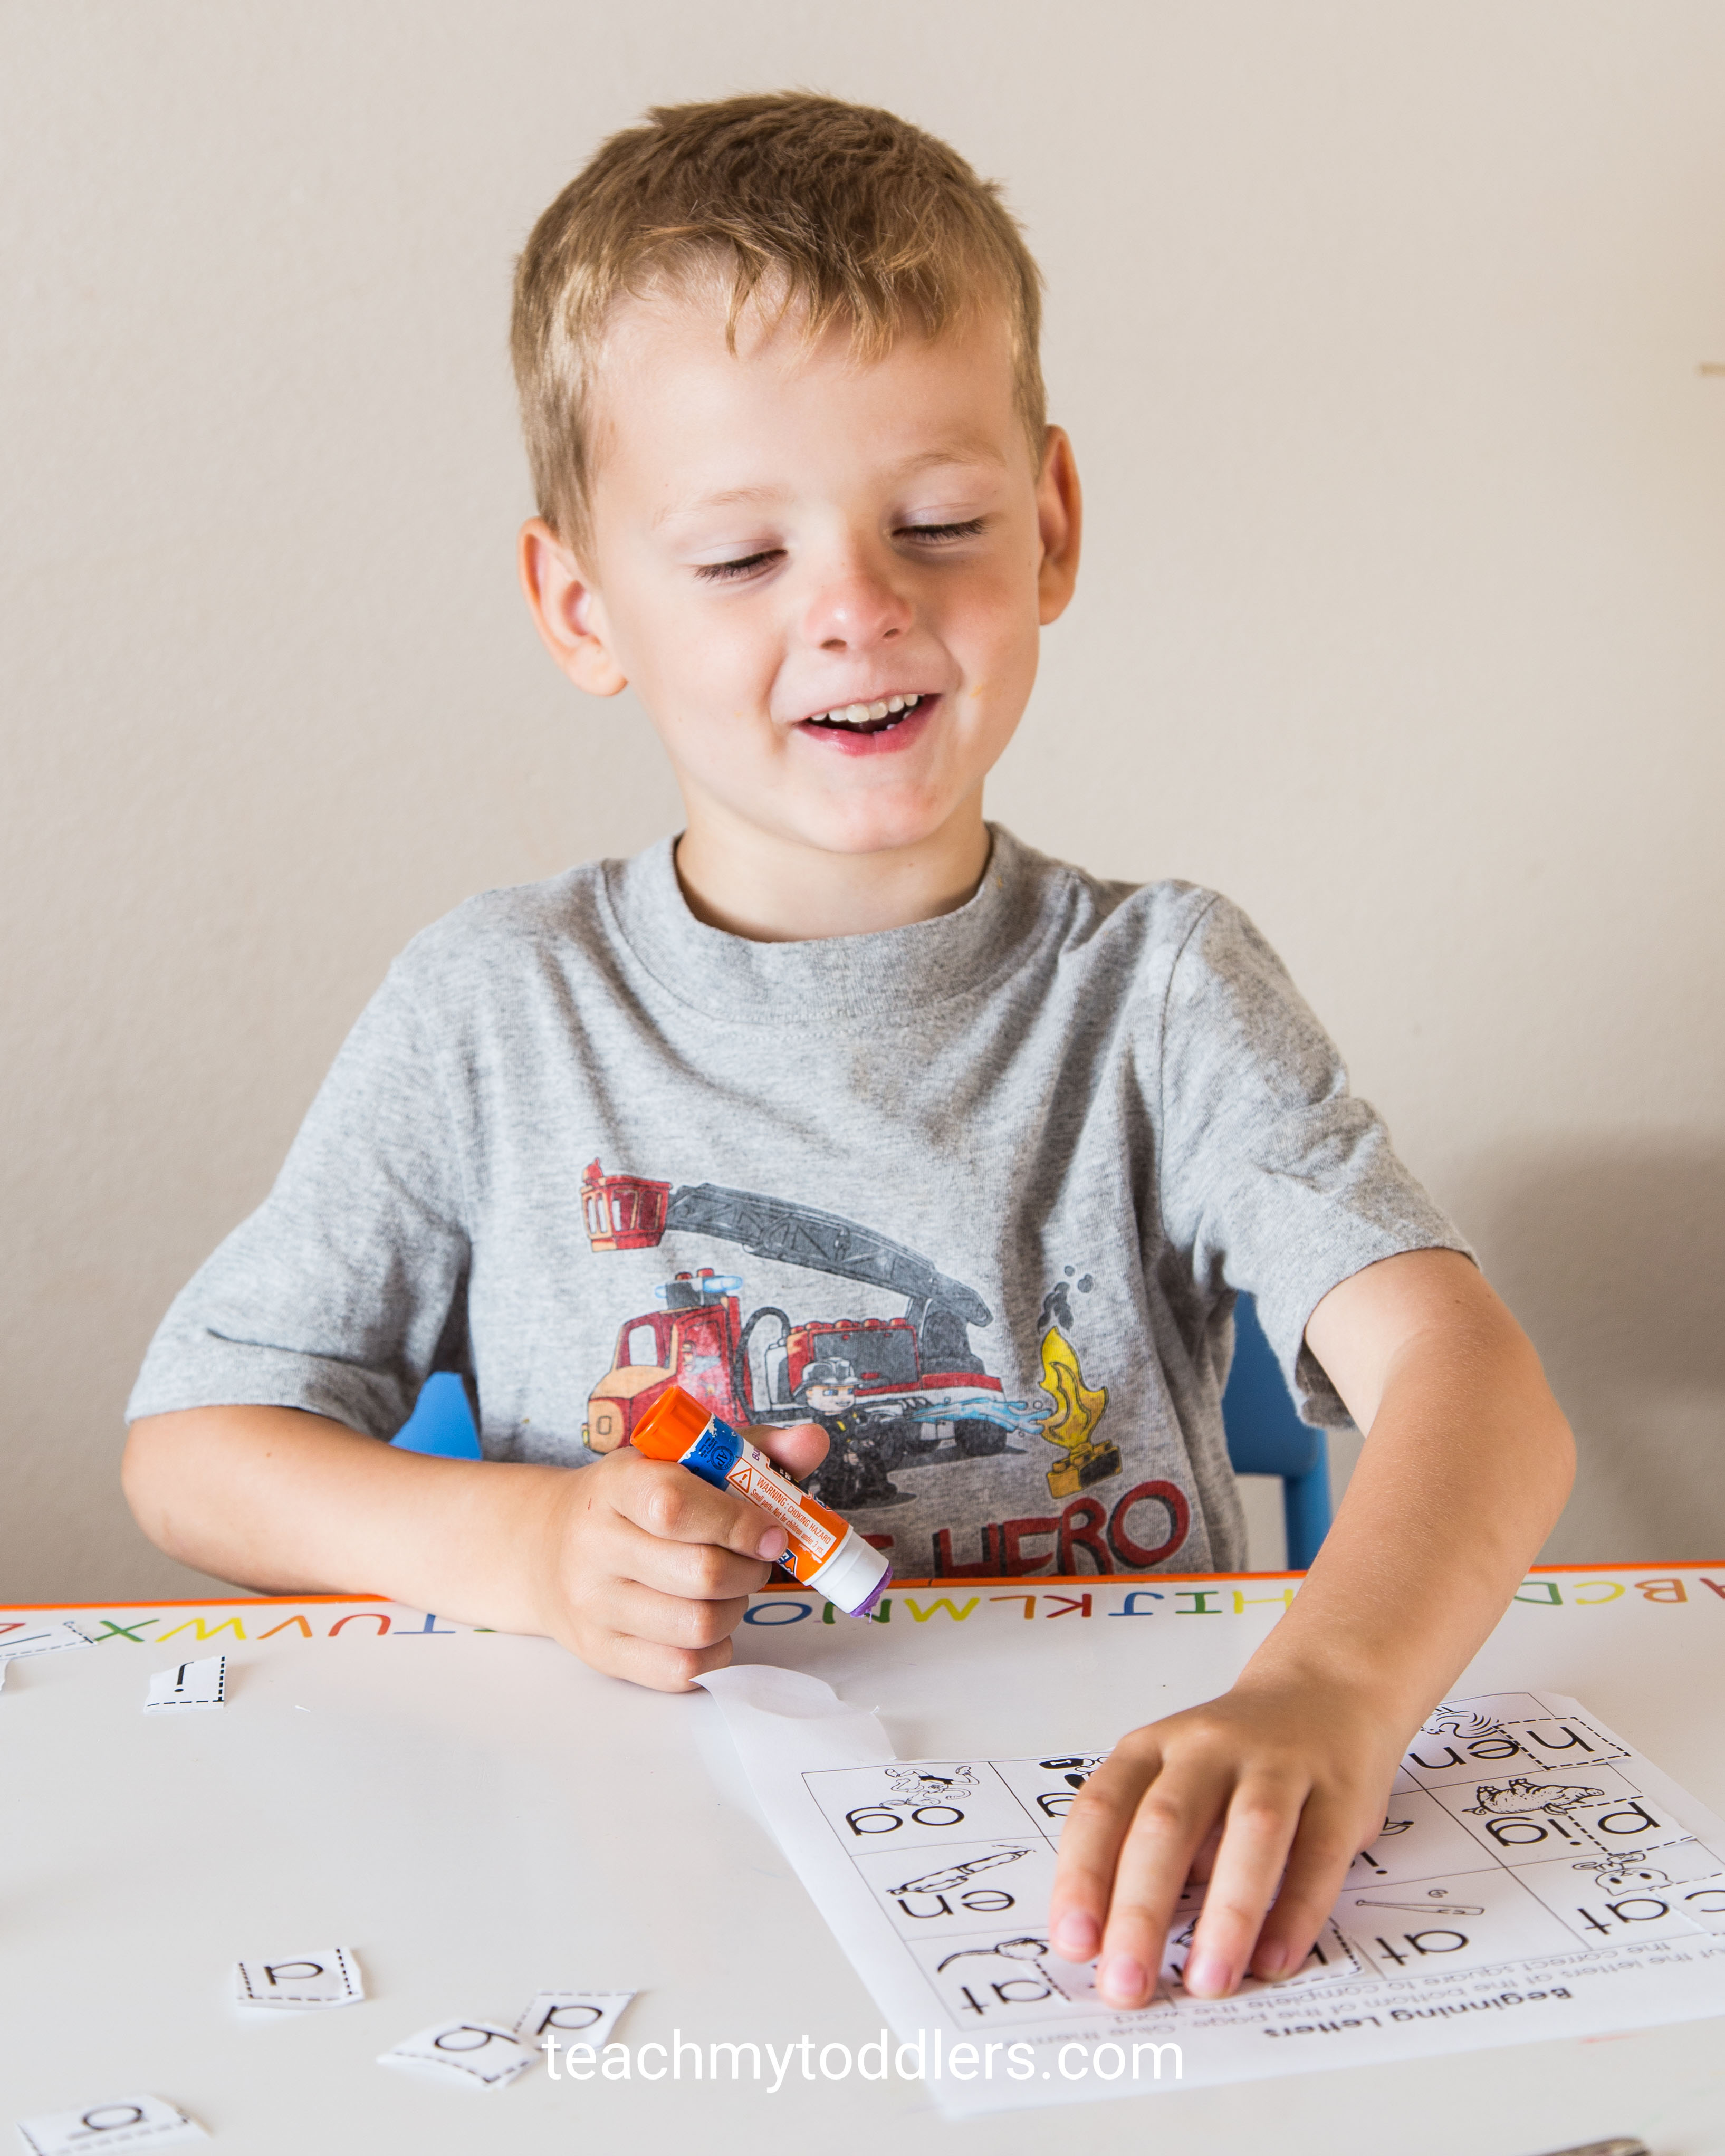 Find out how to use this cut and paste activity to teach preschoolers about letters